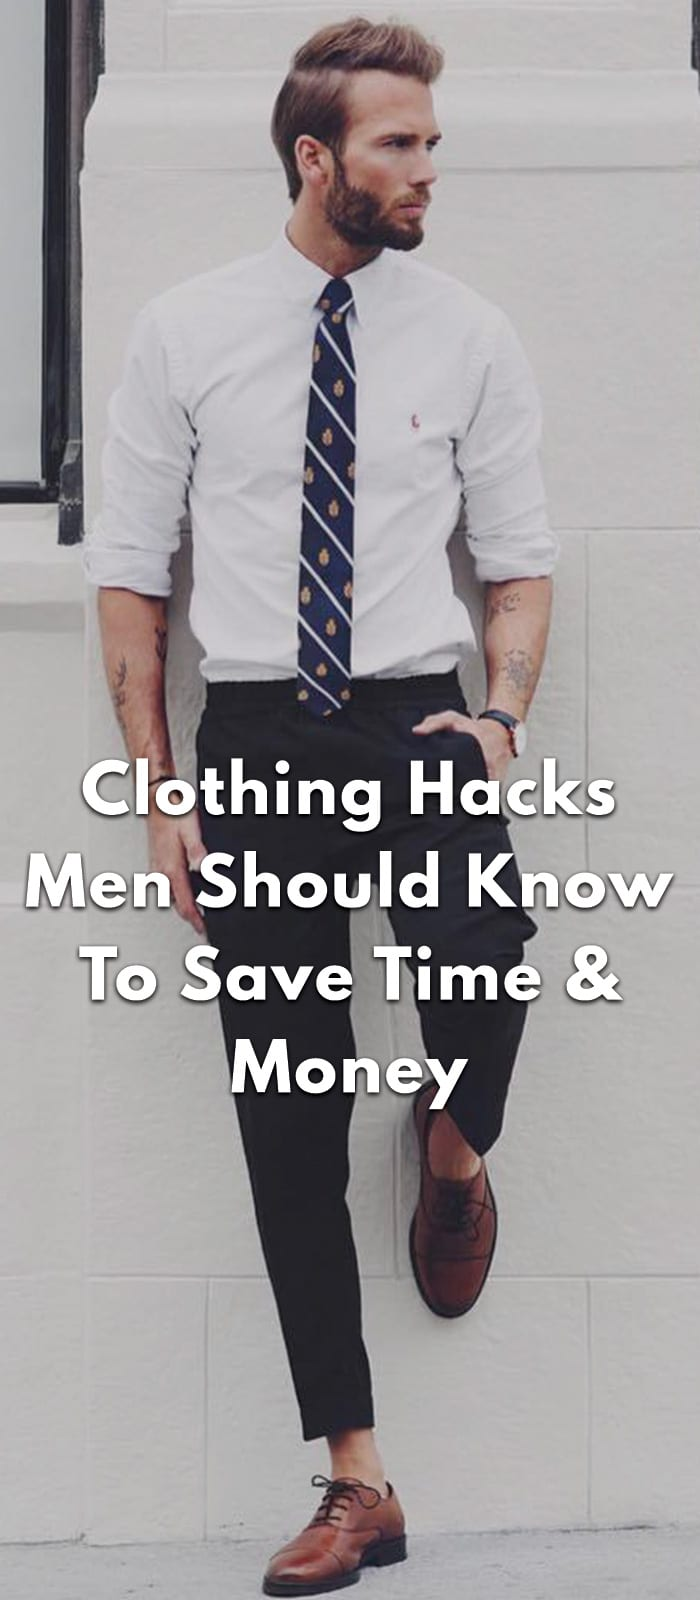 Clothing-Hacks-Men-Should-Know-To-Save-Time-&-Money